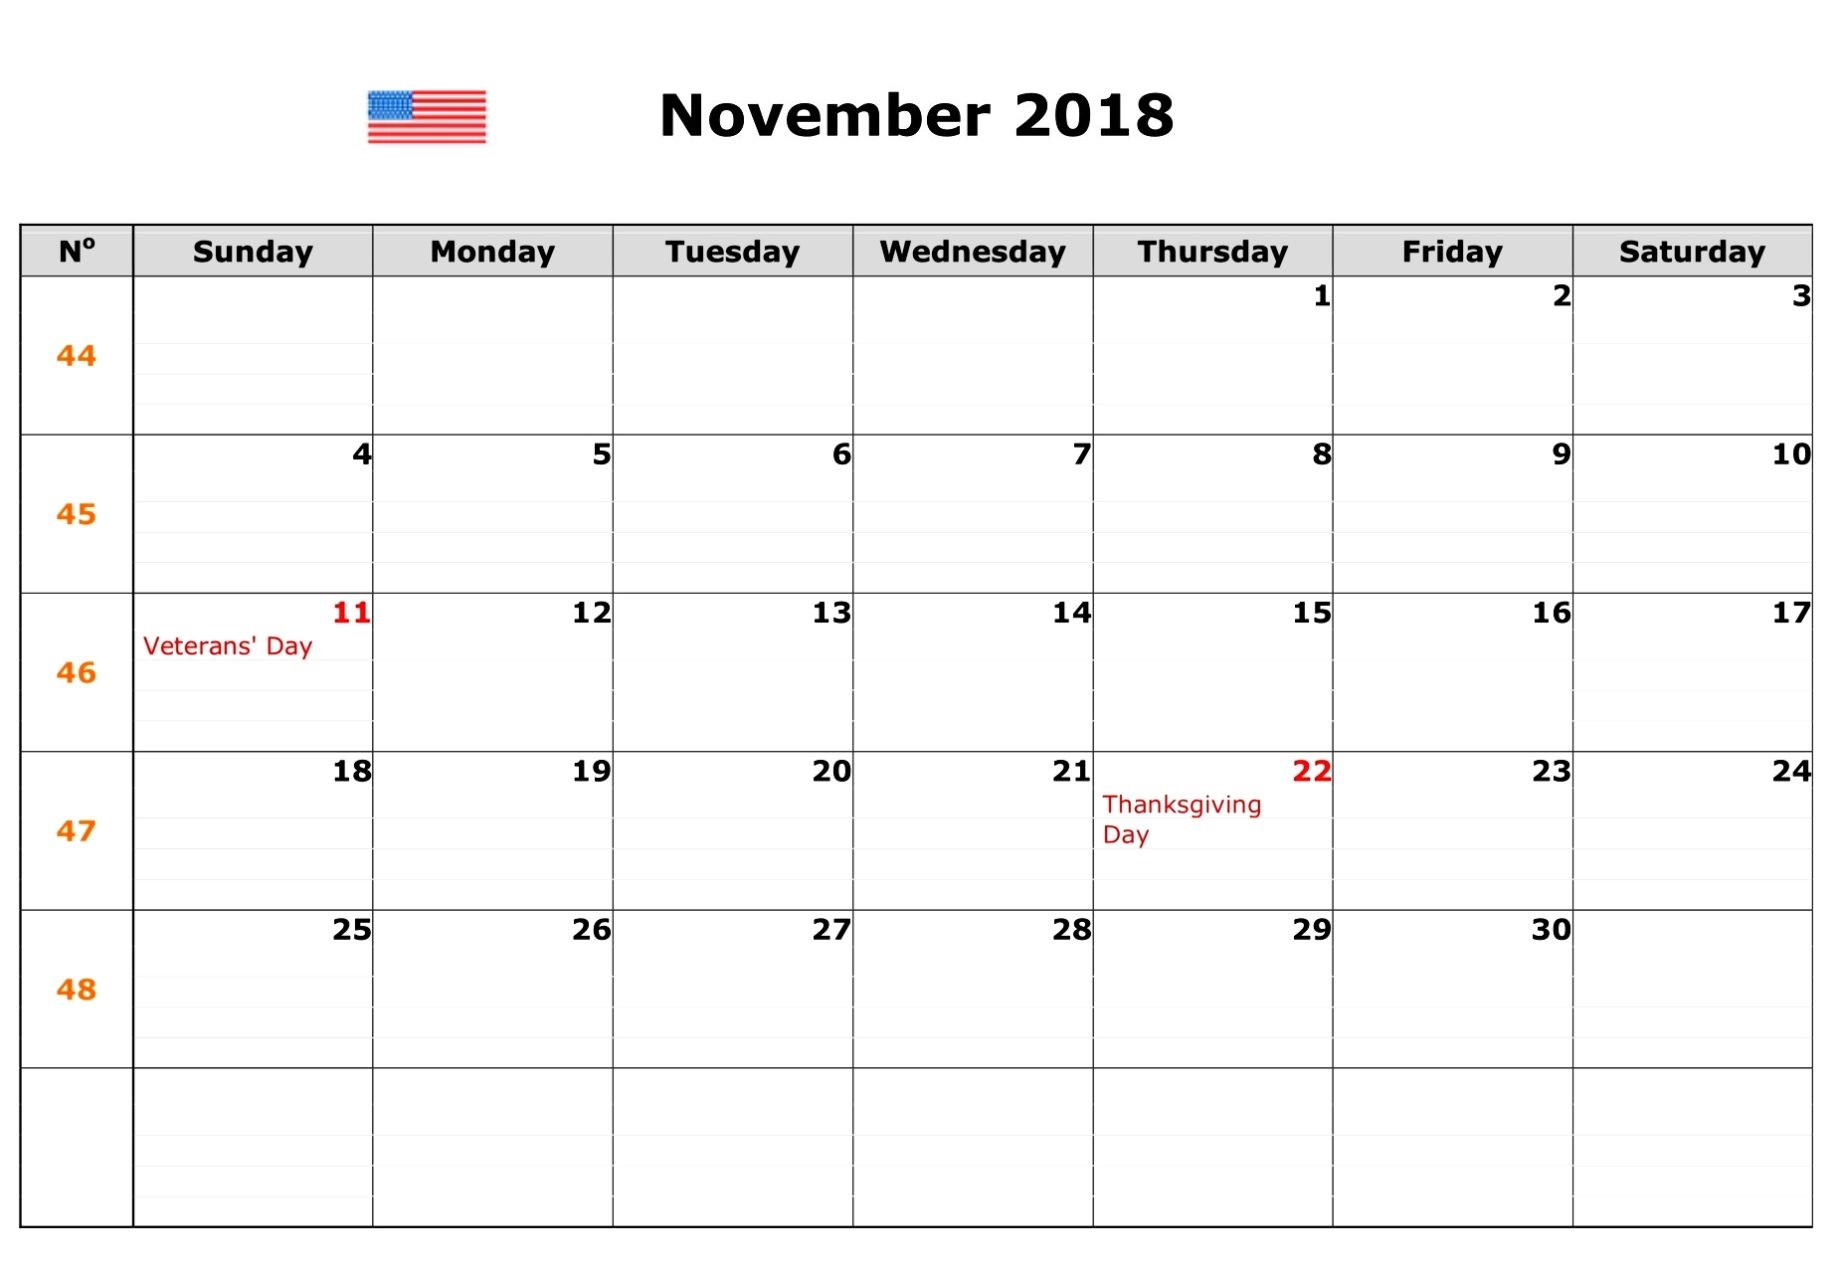 November 2018 Holidays Calendar for USA